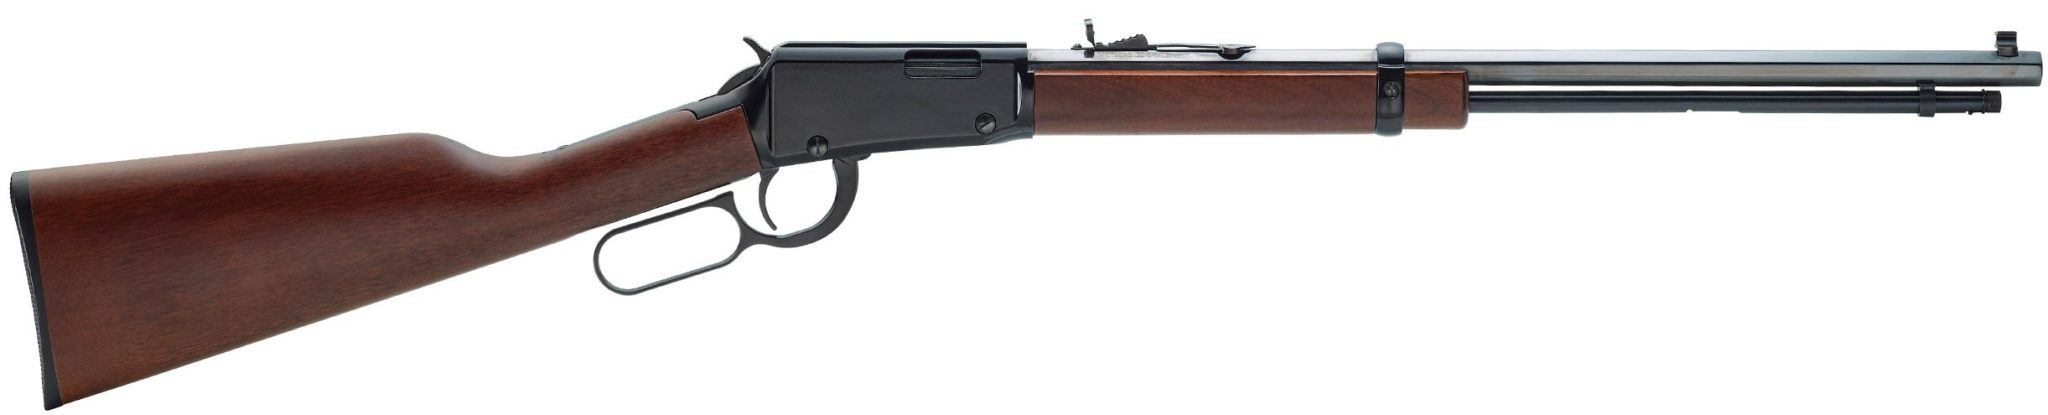 Henry Repeating Arms OCTAGON LEVER 22 LR